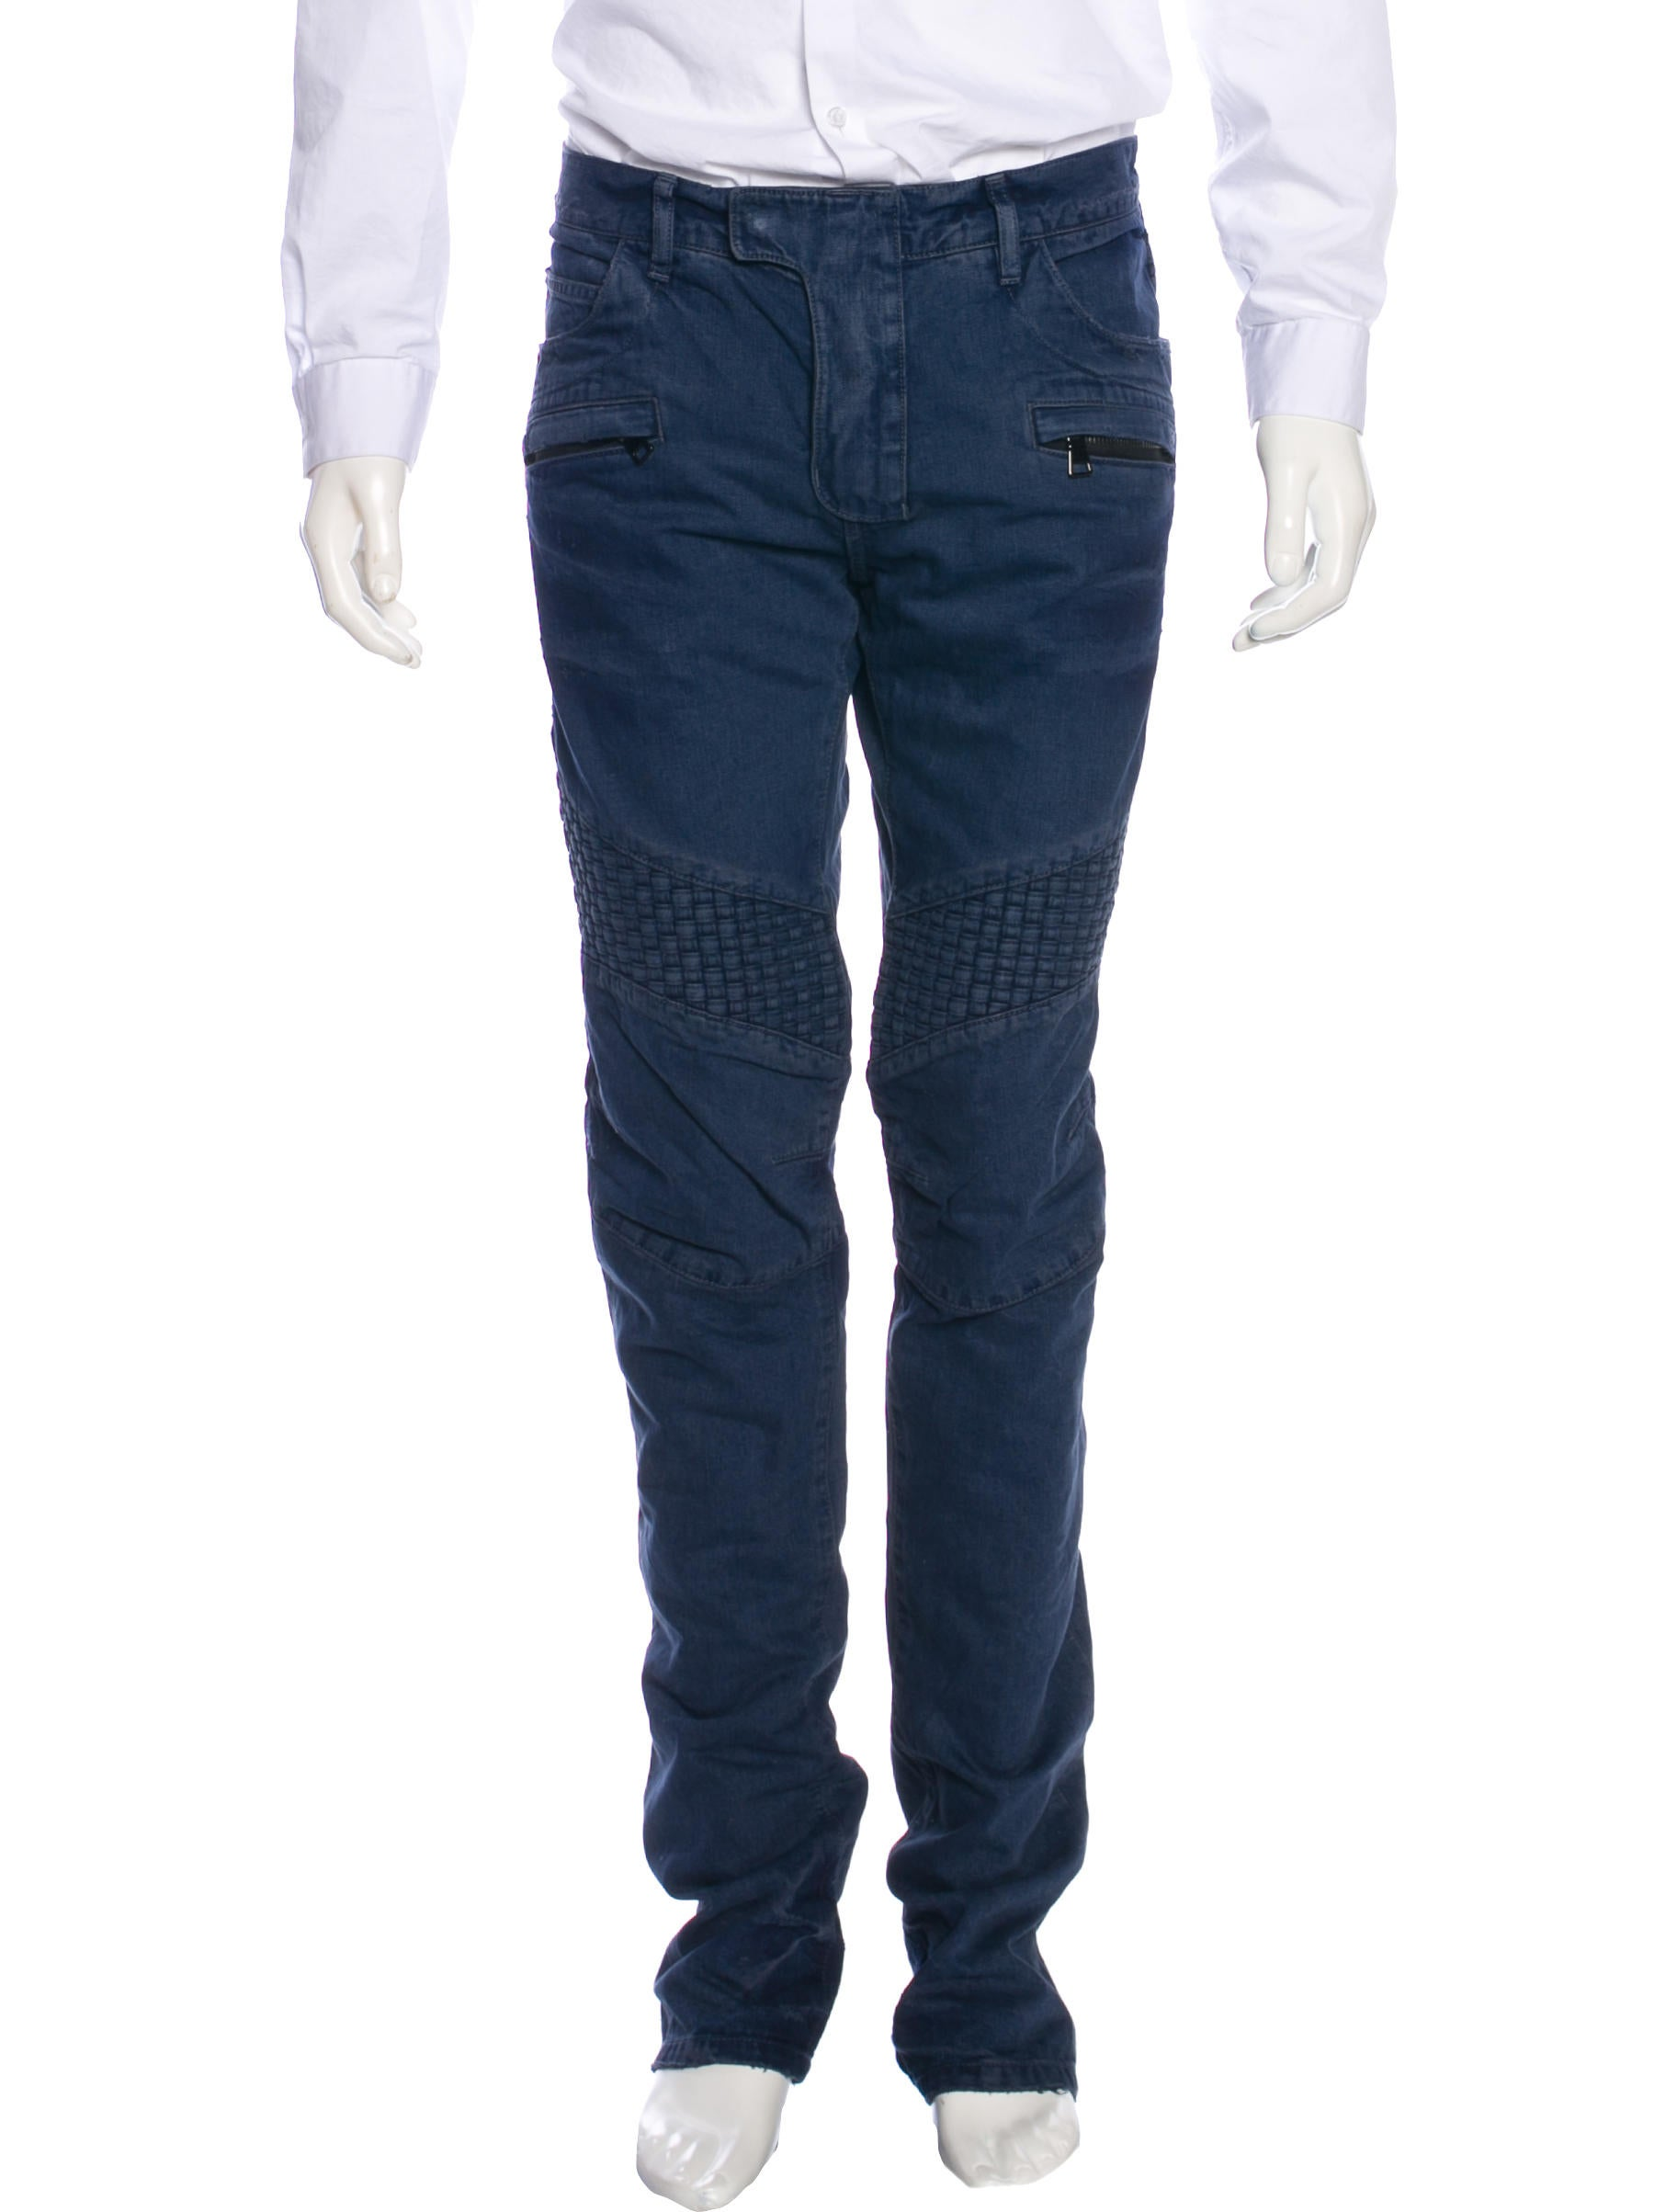 Free Shipping and Free Returns on Balmain Distressed Skinny Biker Jeans at funon.ml Made in Japan, Balmain's light blue cotton-blend denim skinny biker jeans are distressed with shredding, fading, and whiskering.